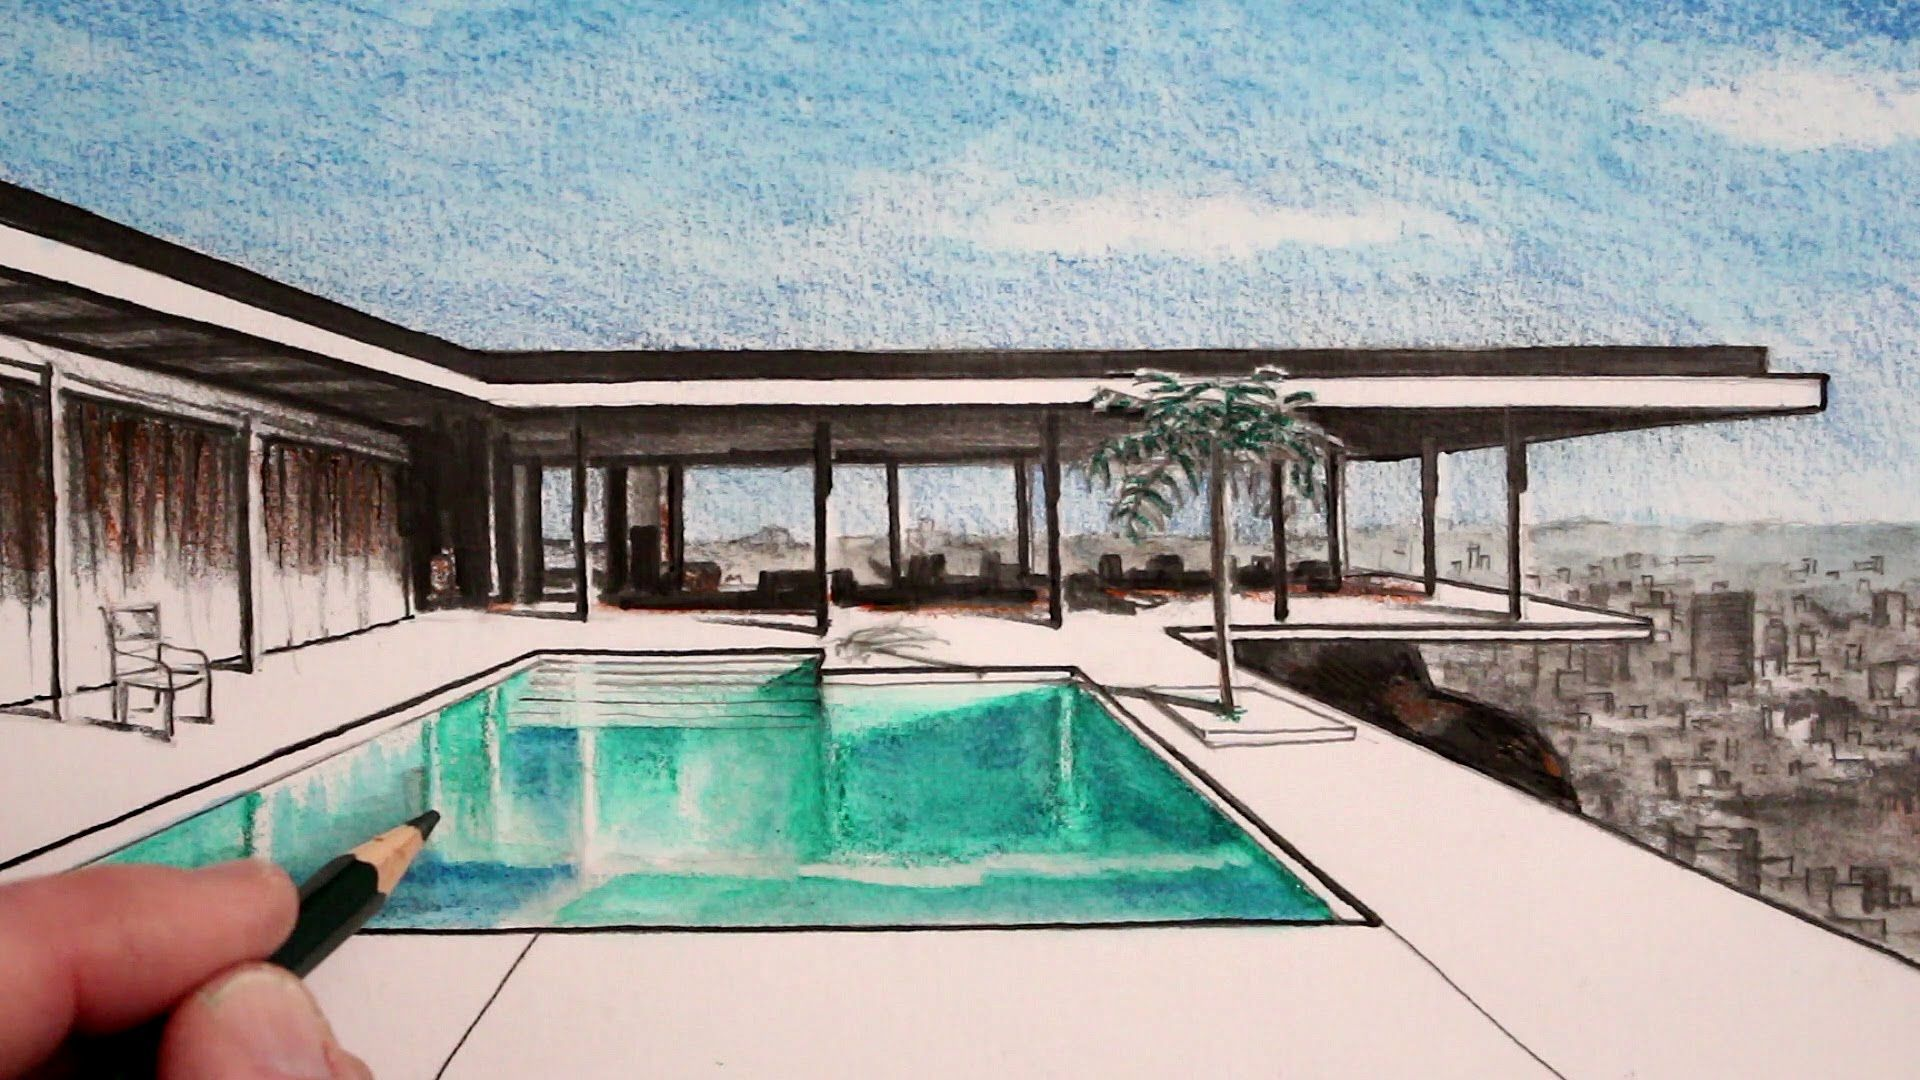 How To Draw A House In Perspective The Stahl House Narrated Perspective Drawing Pool Drawing Swimming Pool Drawing